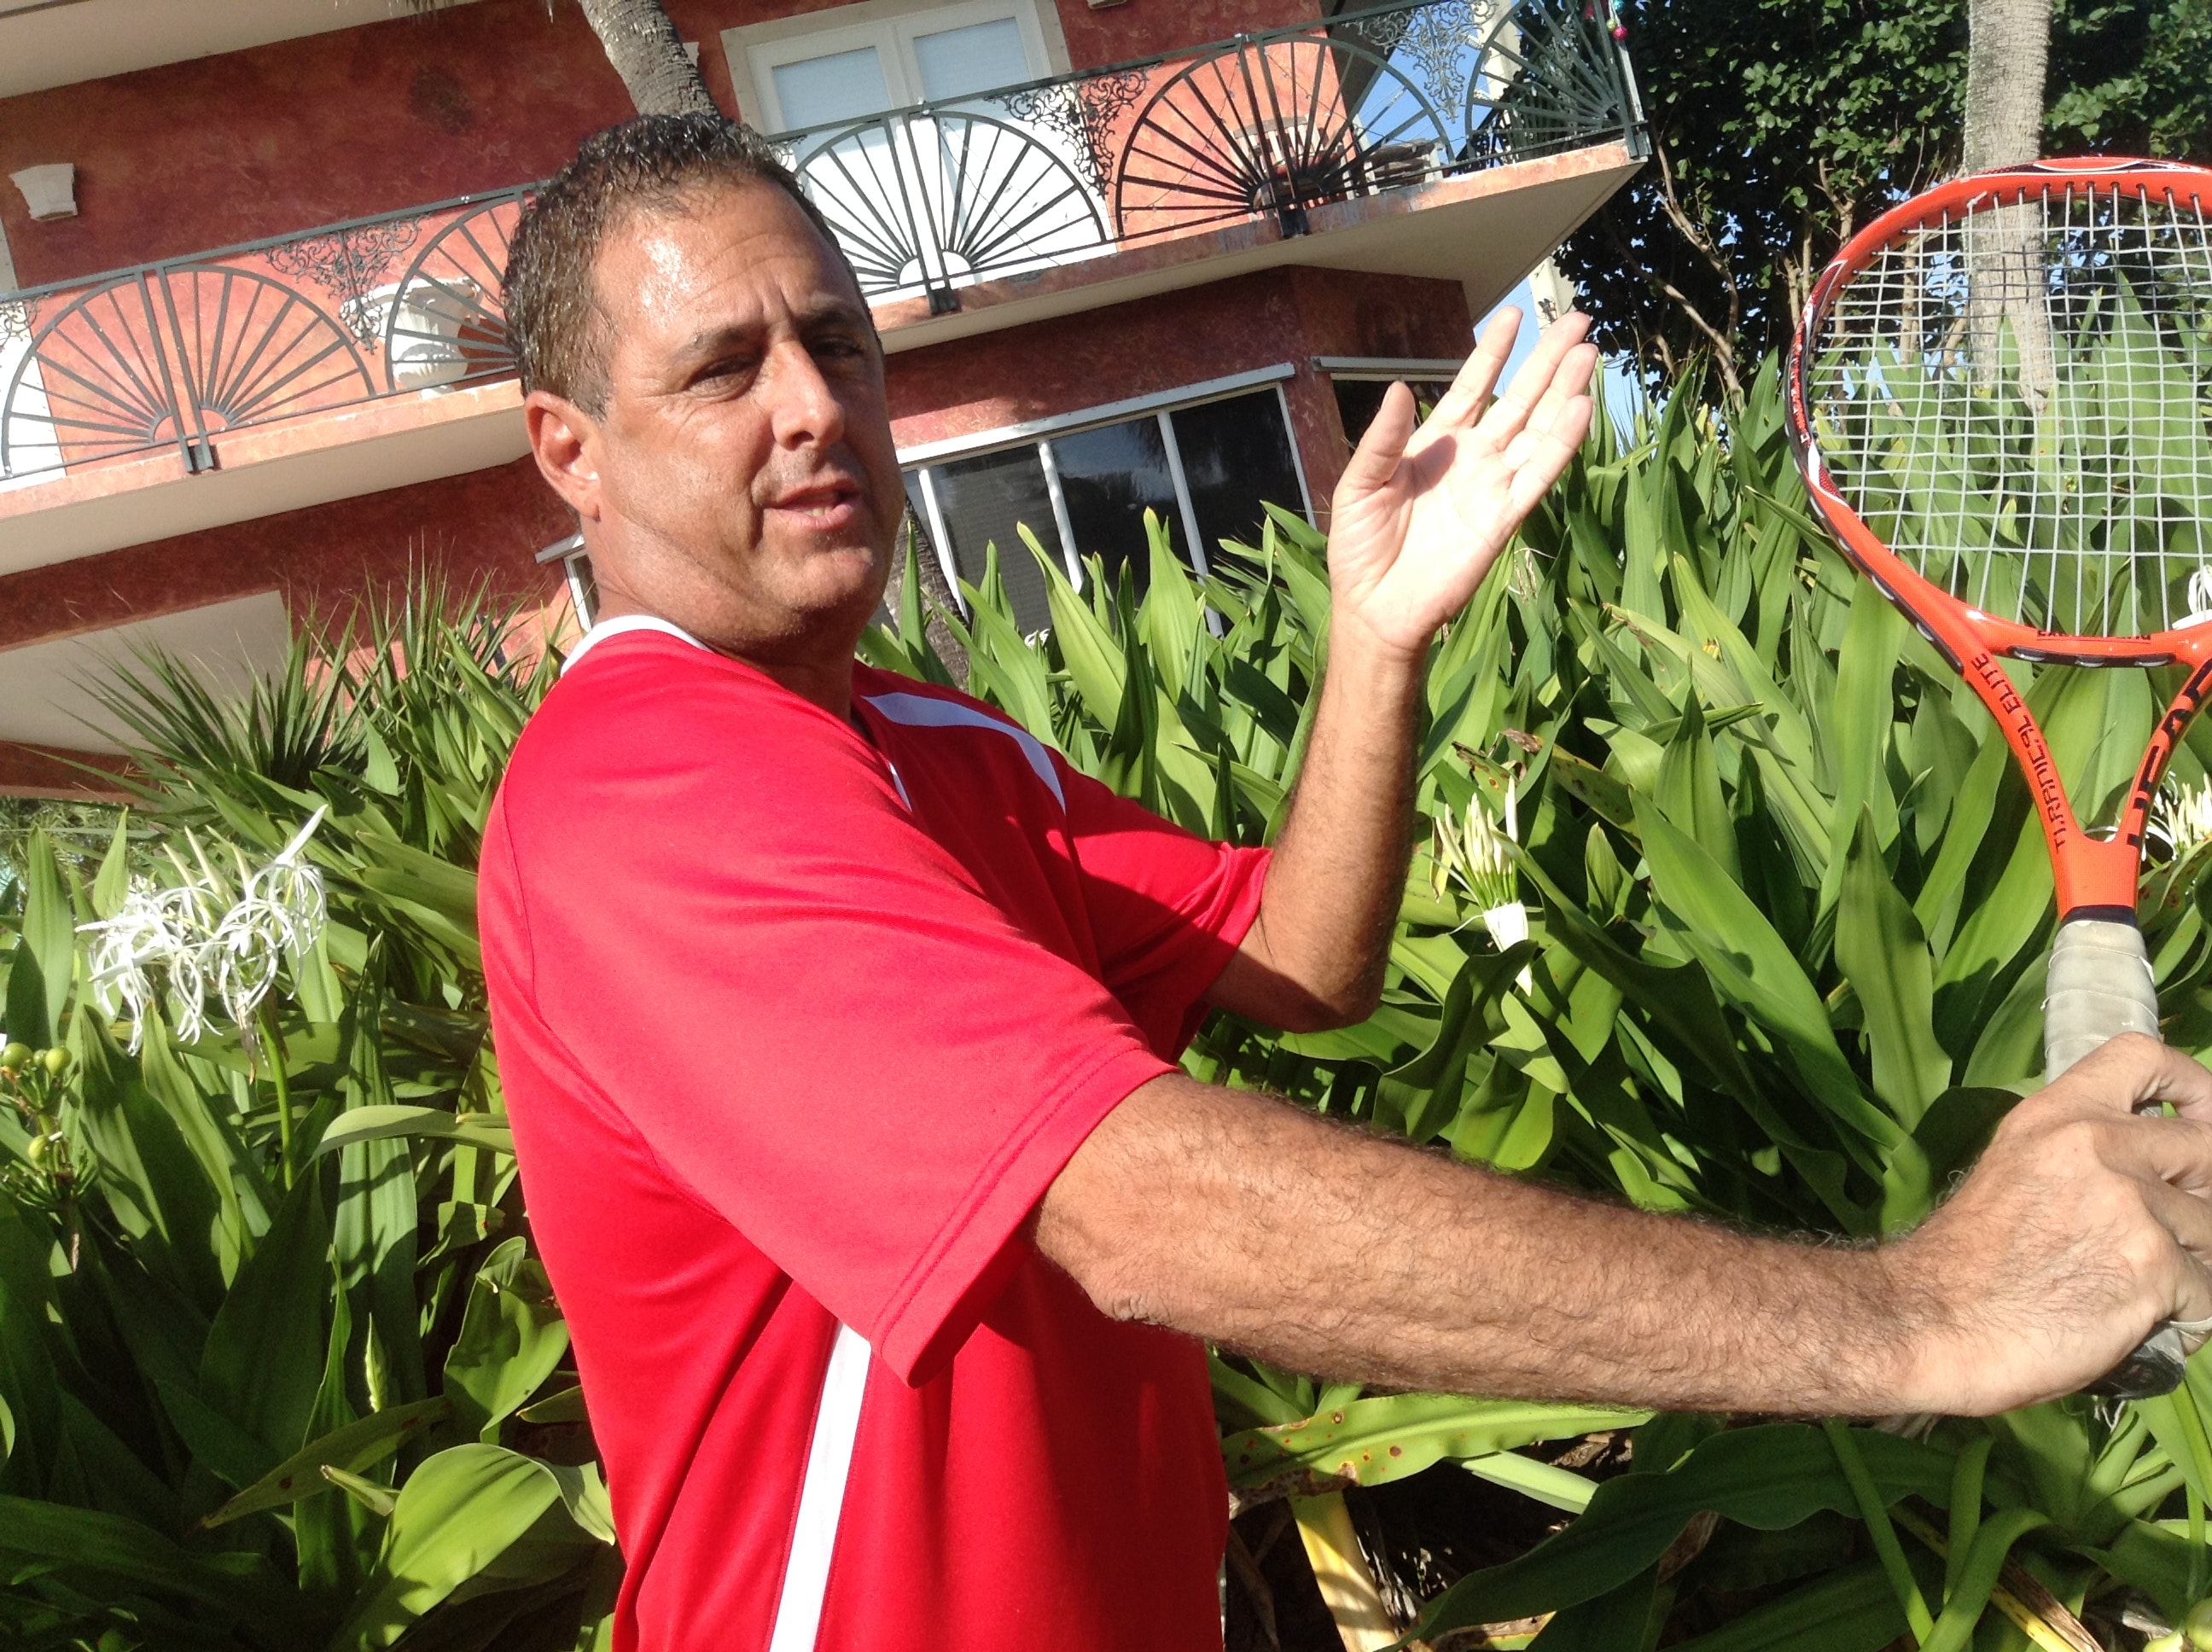 Jason G. teaches tennis lessons in Vero Beach, FL